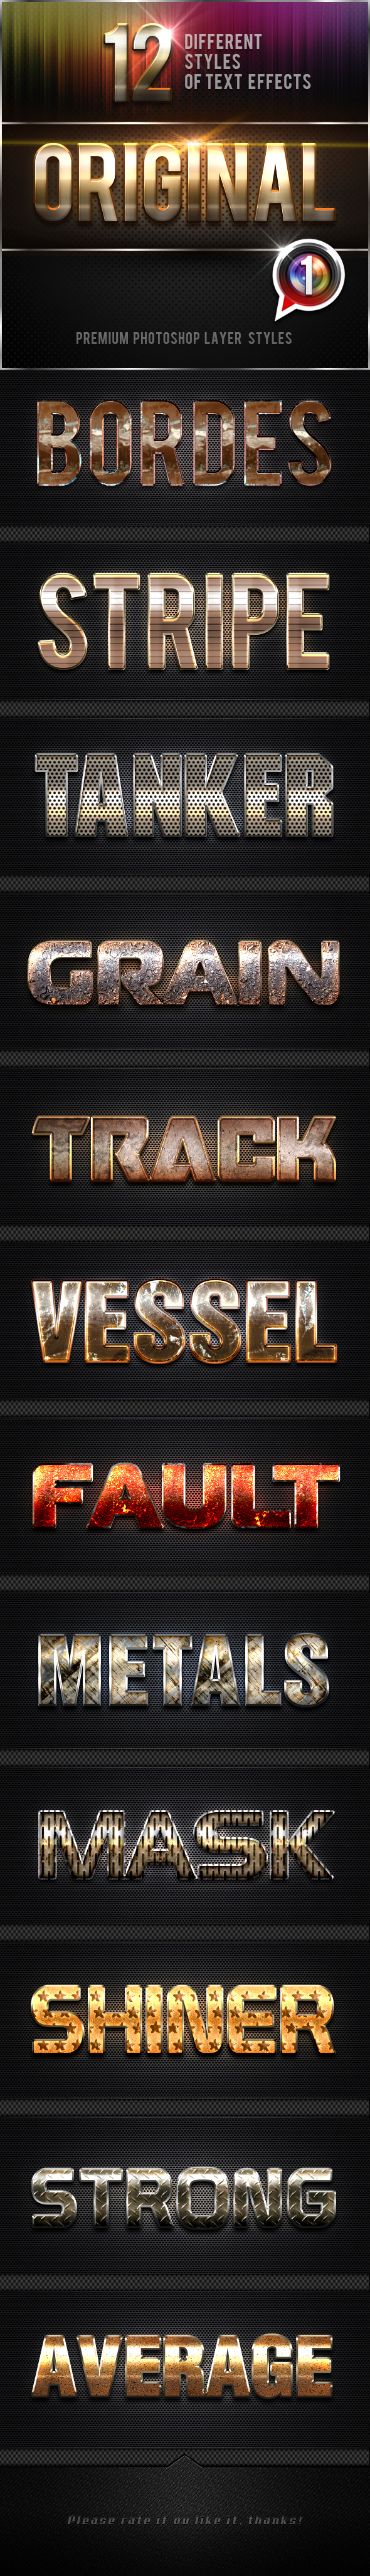 12 Original Photoshop Text Effects Vol.1 - Text Effects Styles